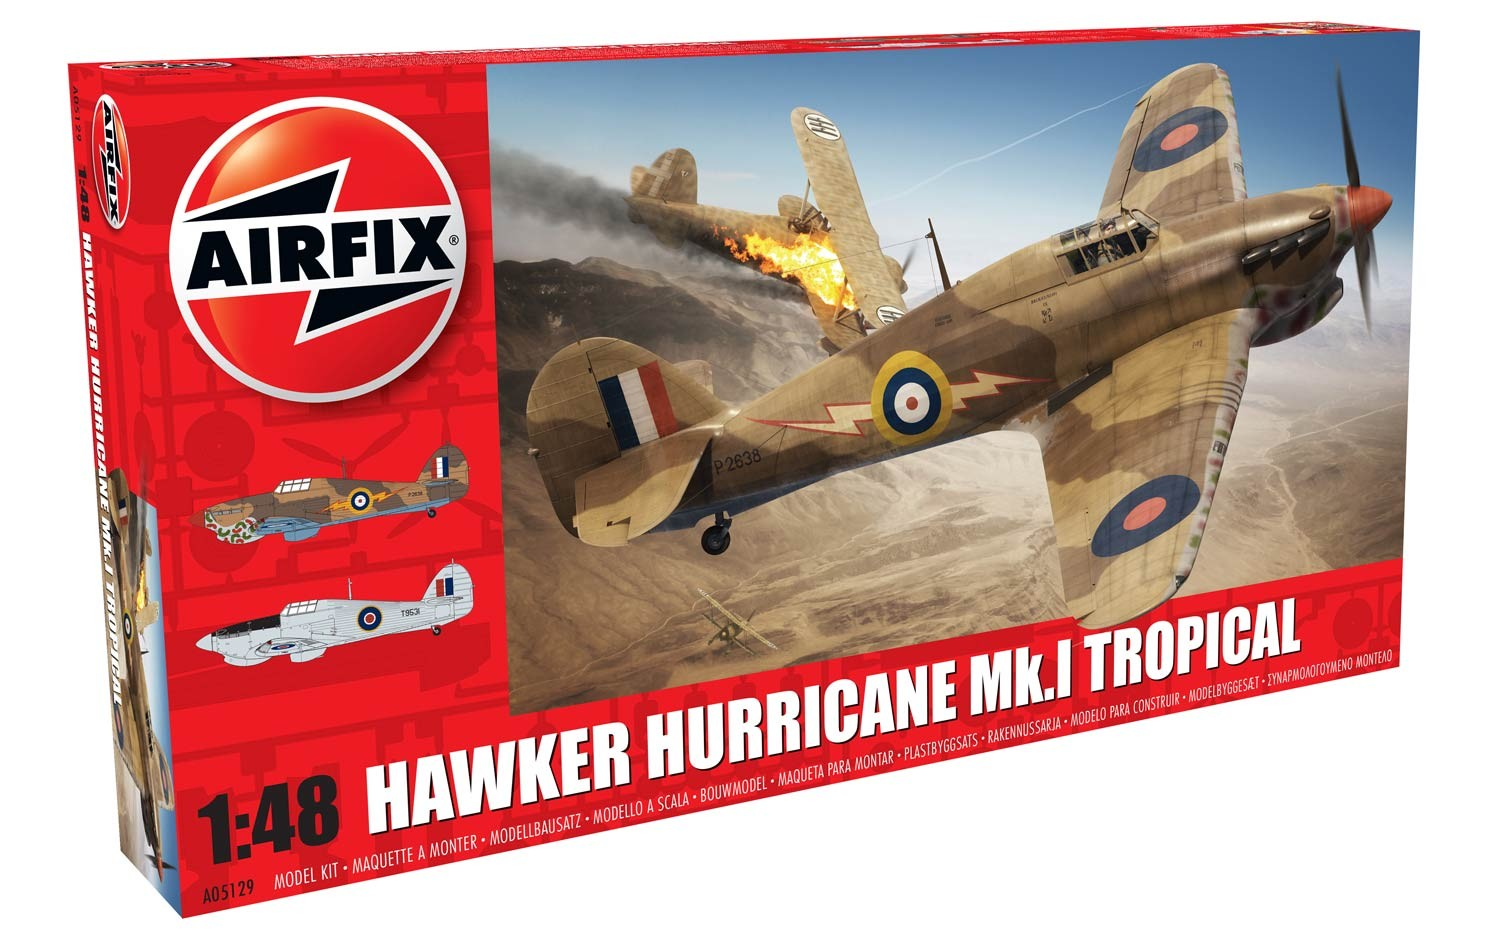 Hawker Hurricane Mk.1 Tropical